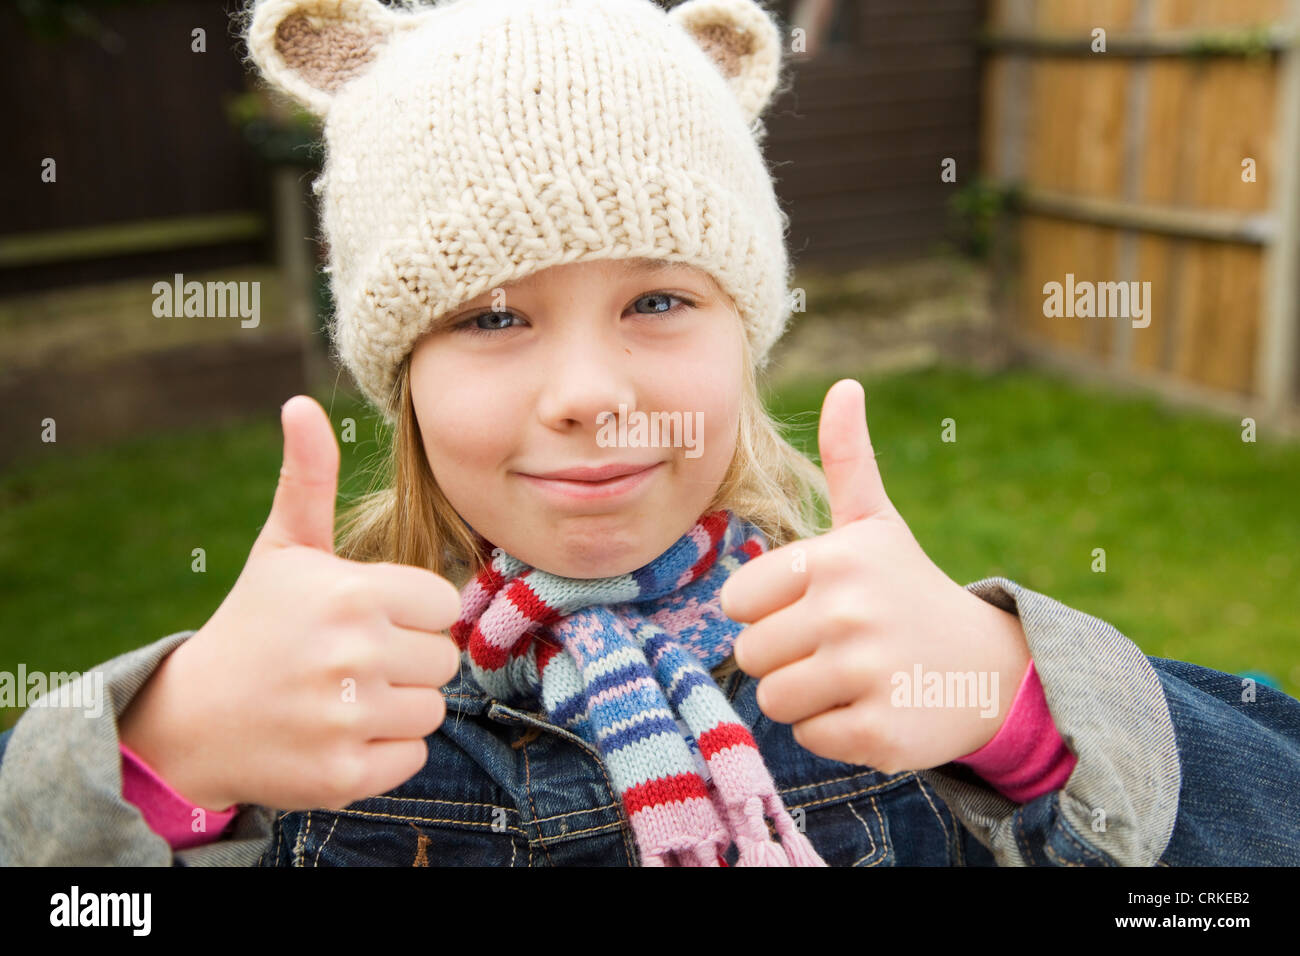 Smiling girl giving thumbs-up outdoors - Stock Image